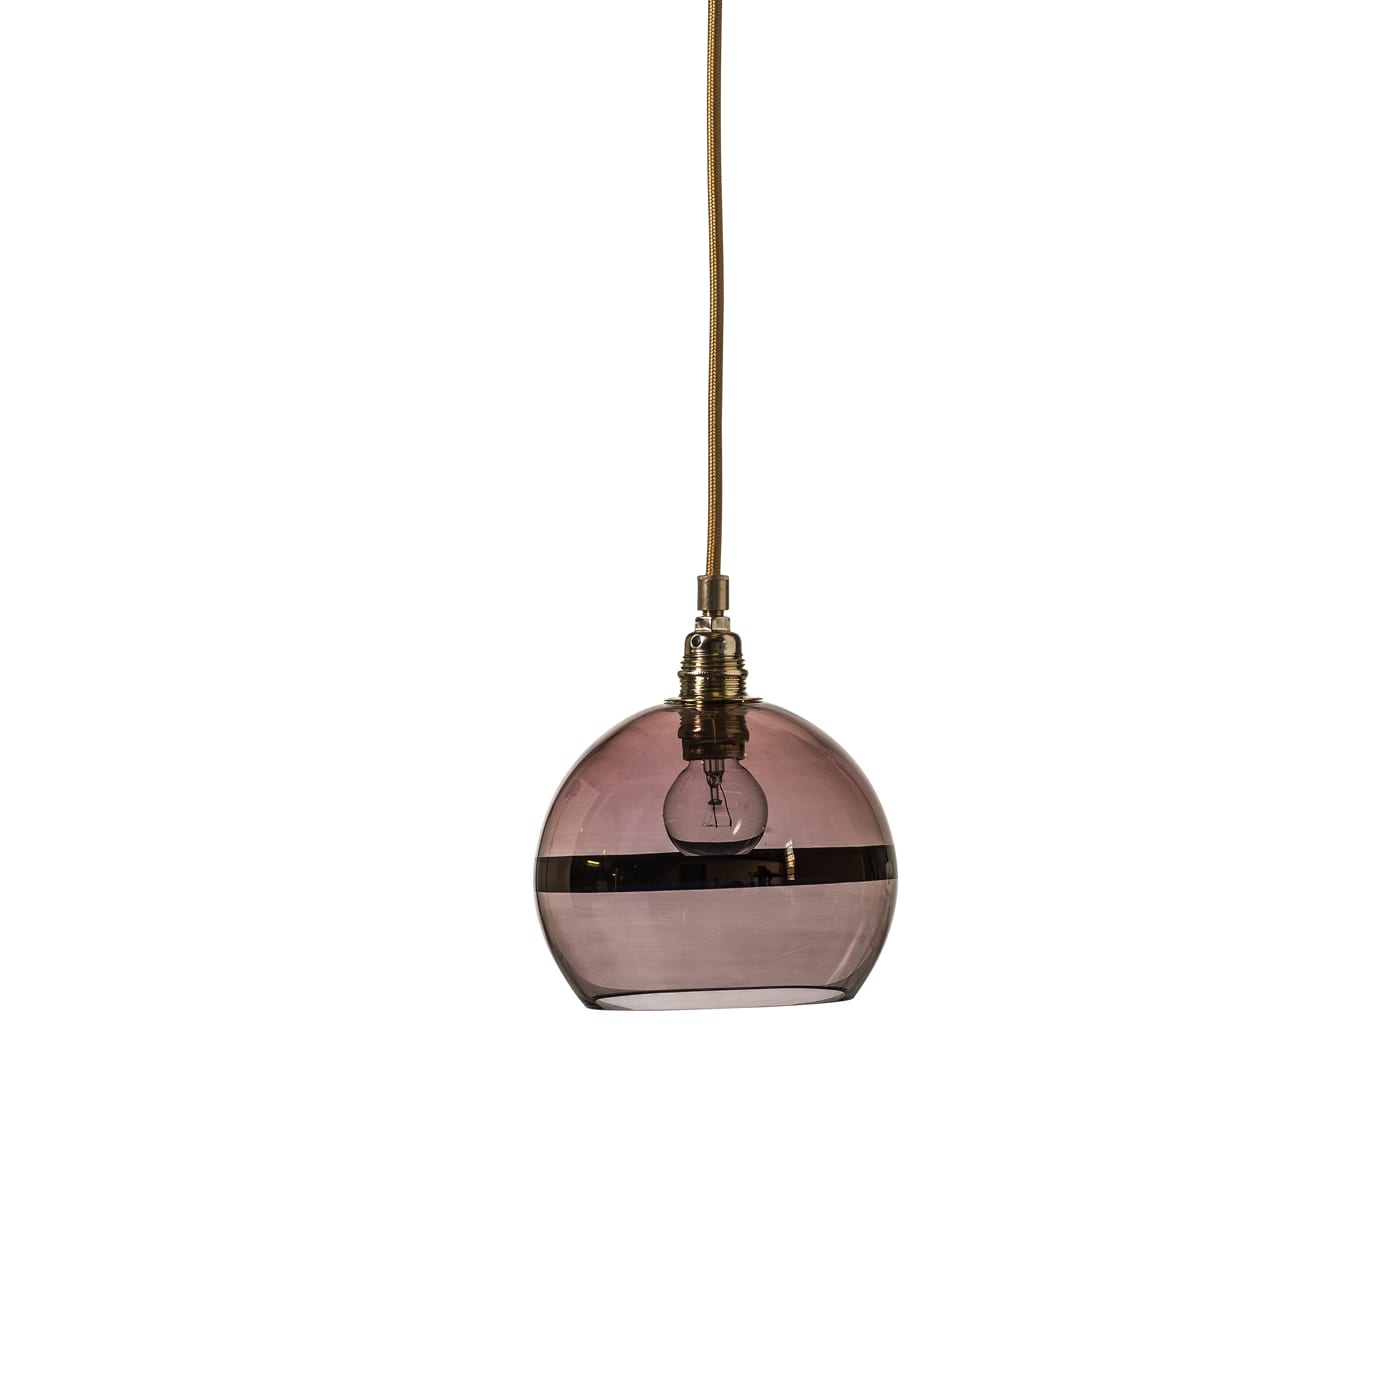 Rowan Pendant Lamp Copper Stripe on Obsidian, 15cm